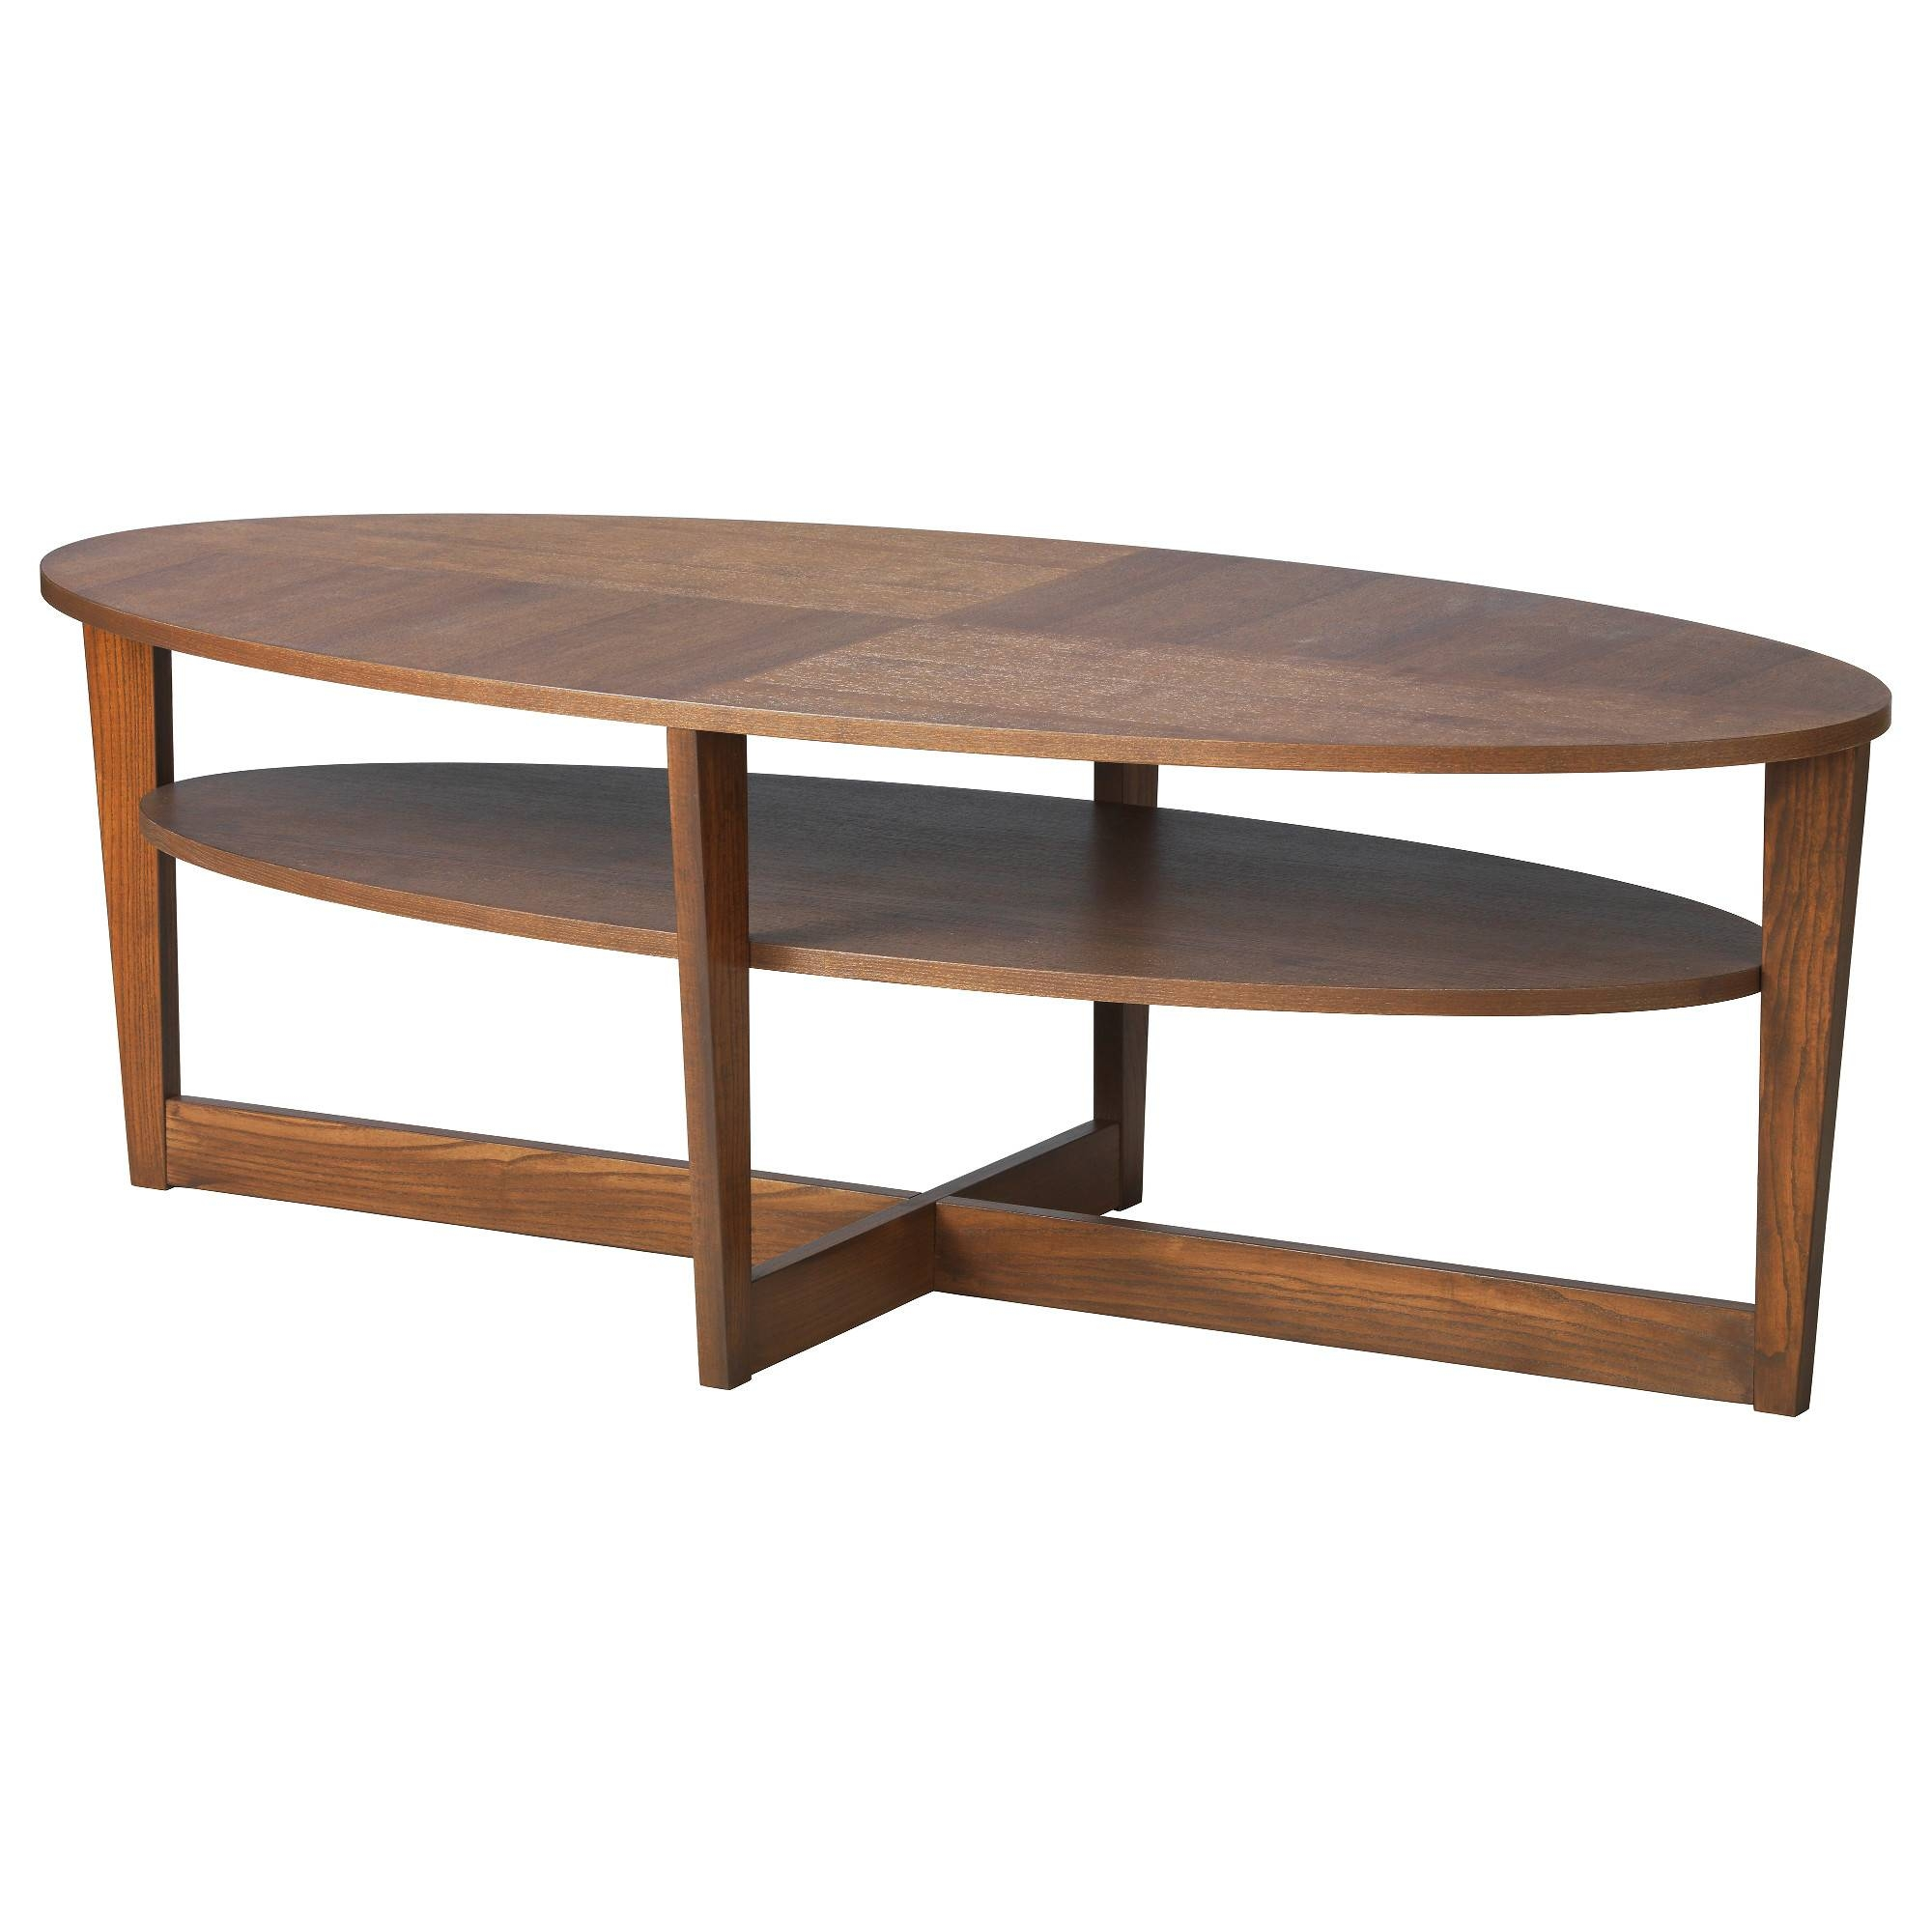 Vejmon Coffee Table - Brown - Ikea with regard to Rounded Corner Coffee Tables (Image 28 of 30)